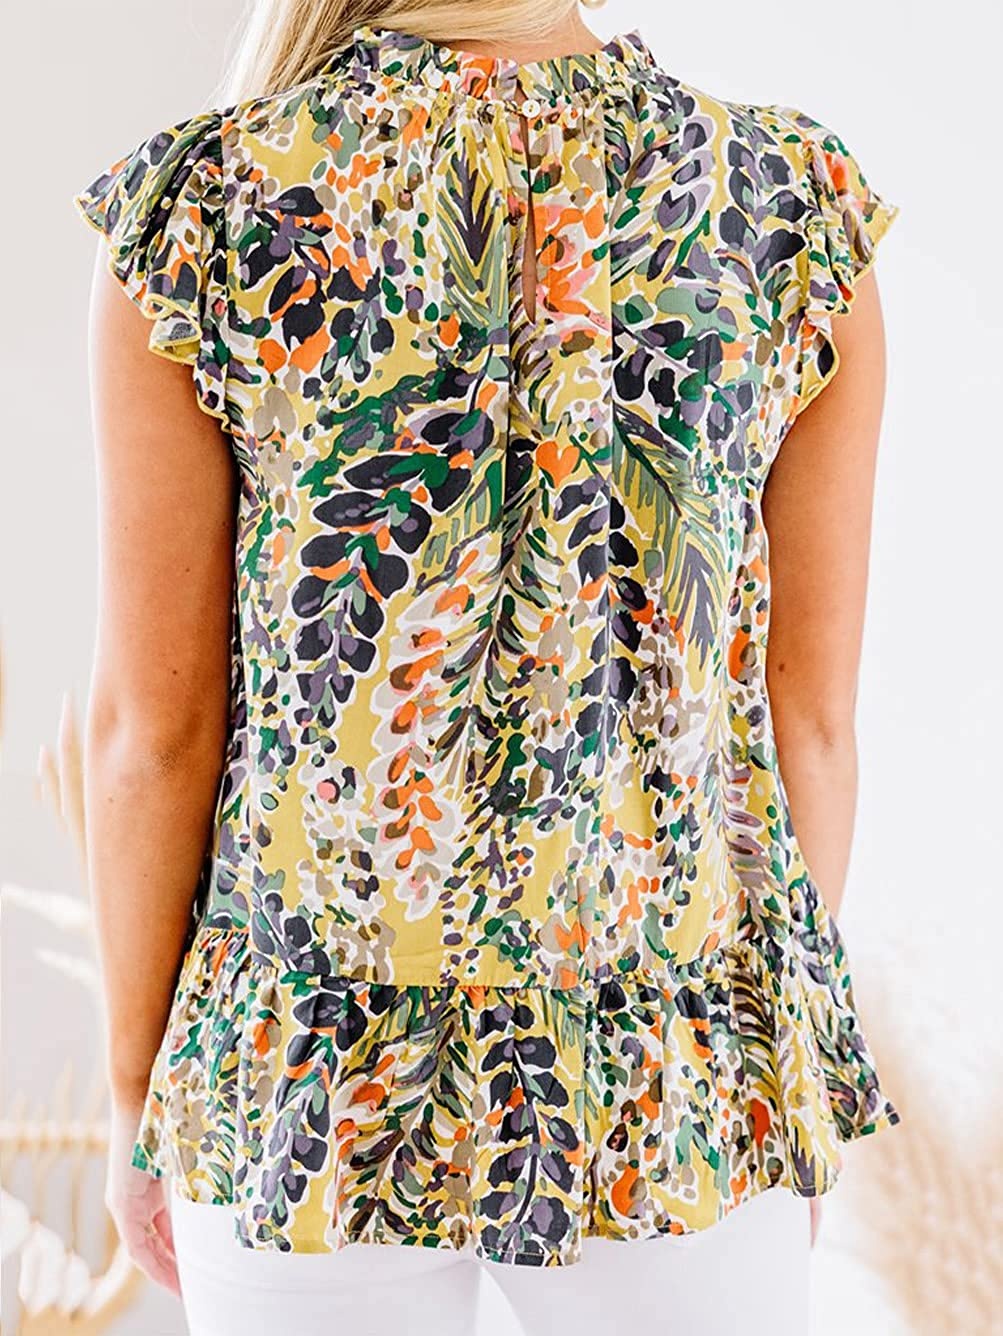 Famulily Womens Floral Tops Cap Sleeves High Ruffled Neckline Shirts Summer Cute Blouse